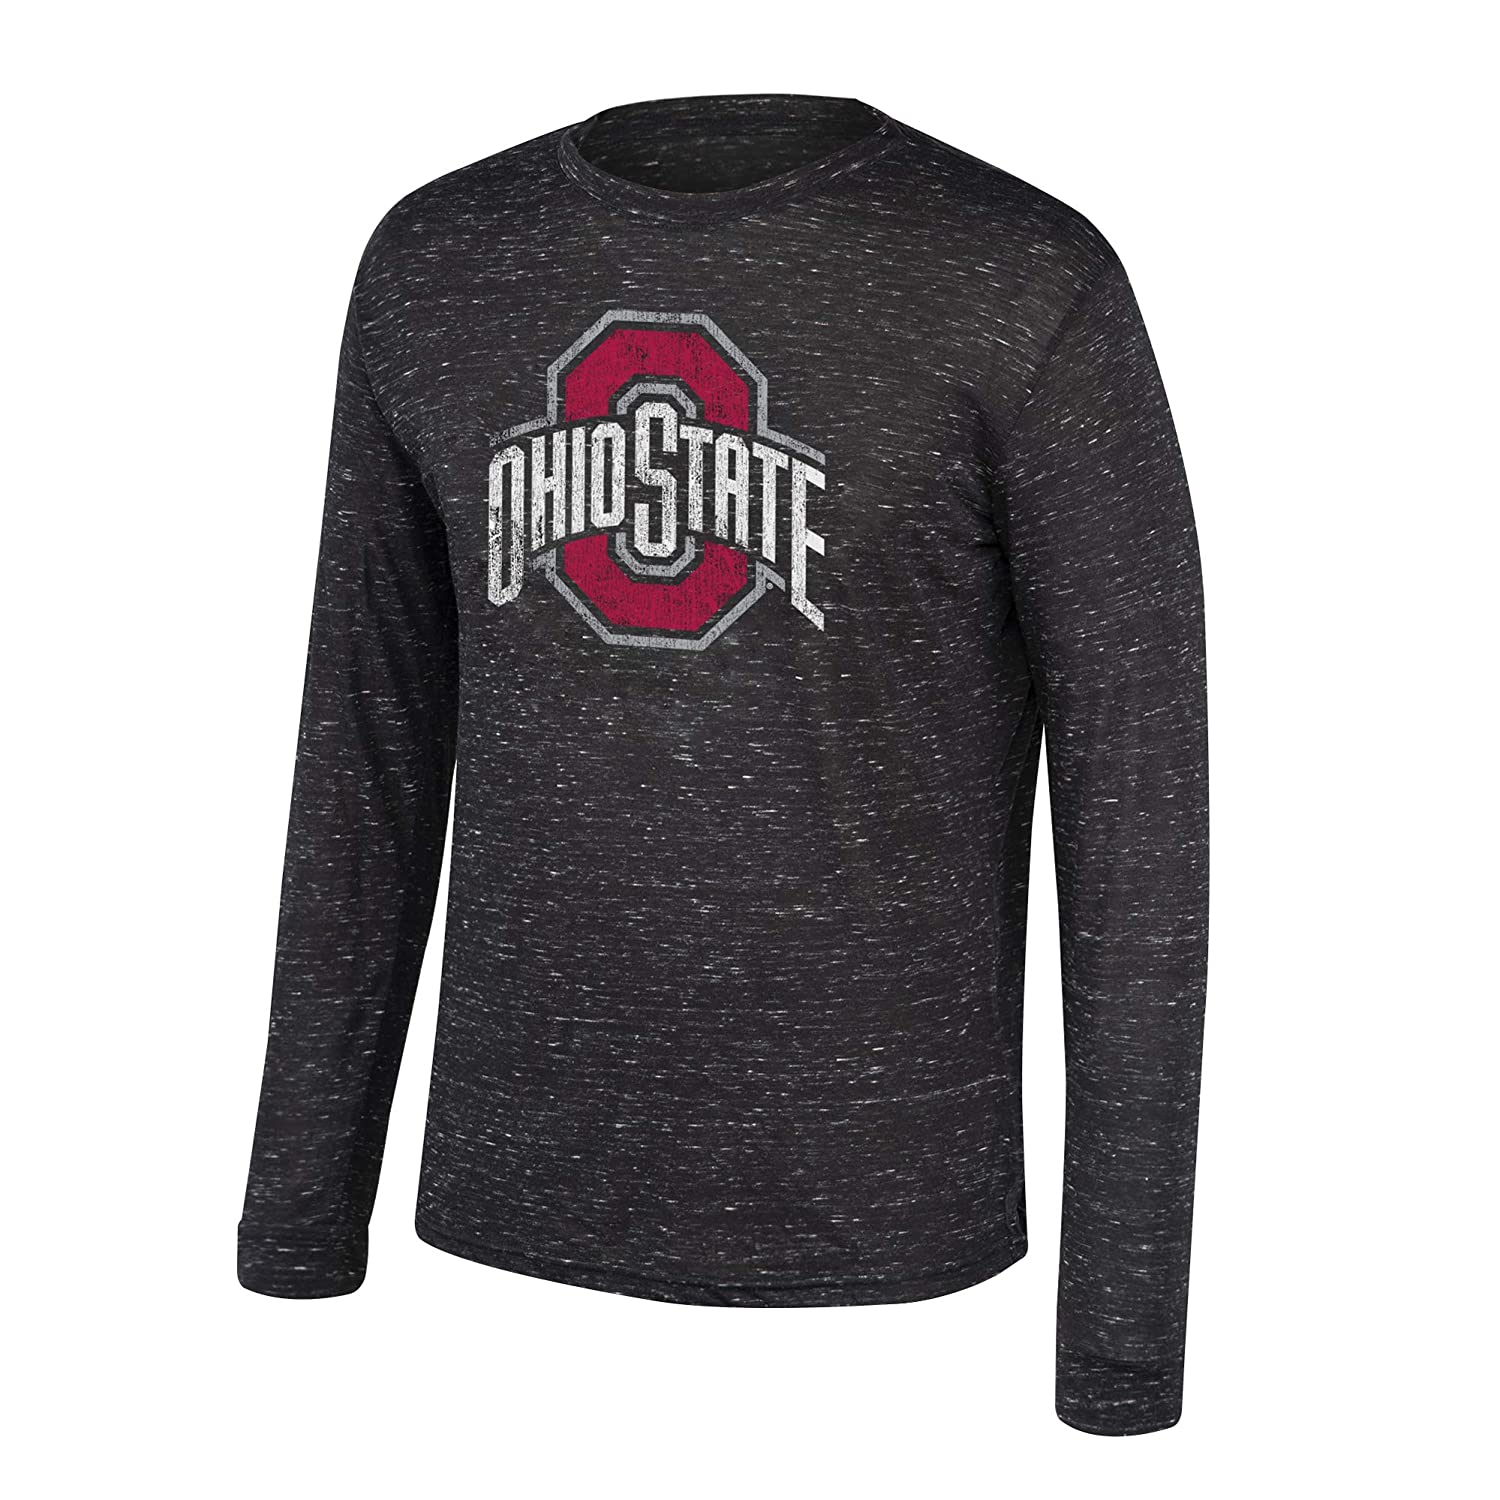 Top of the World NCAA Mens Ohio State Buckeyes Dark Heather Hearitage Tri-blend Long Sleeve Tee Black Heather Medium